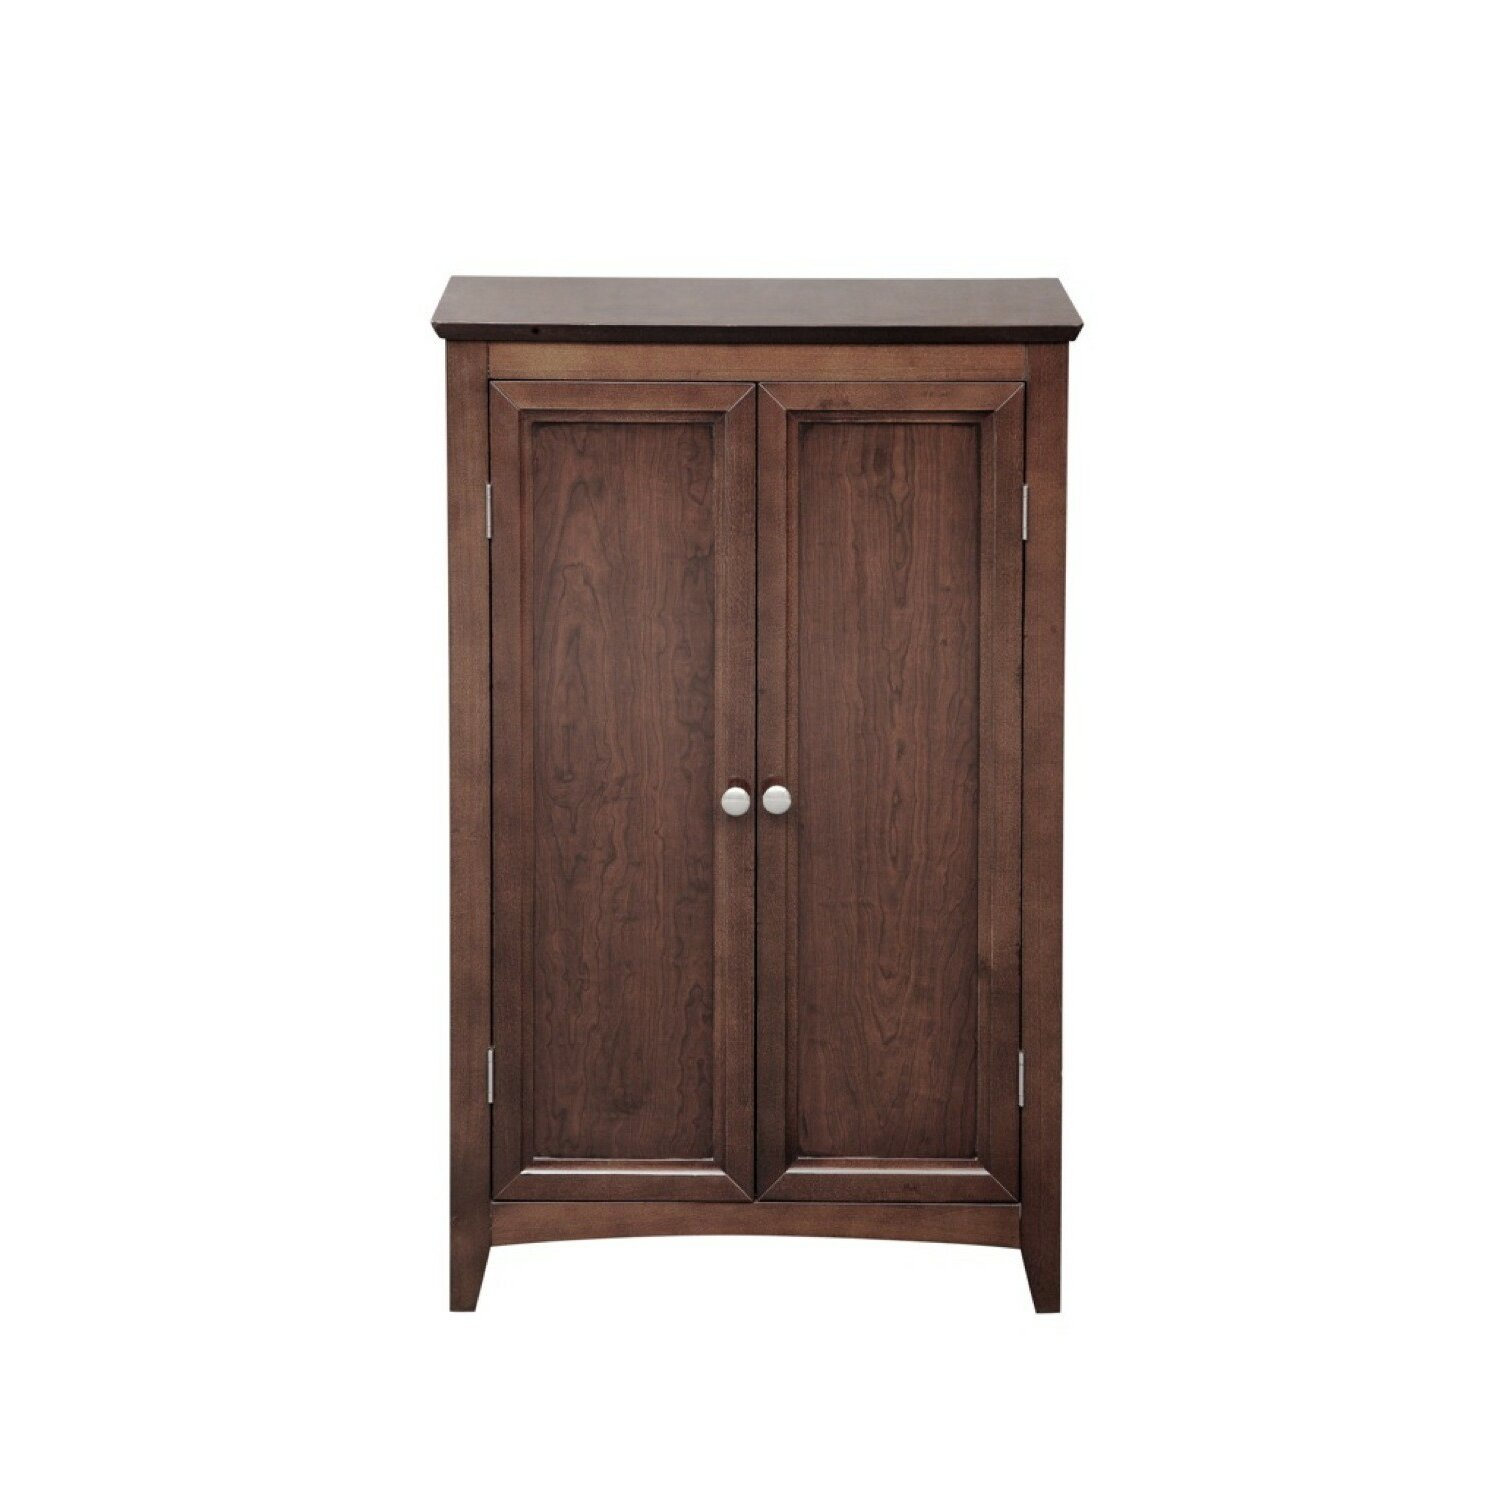 Jeco inc 2 door storage cabinet reviews wayfair for 1 door storage cabinet